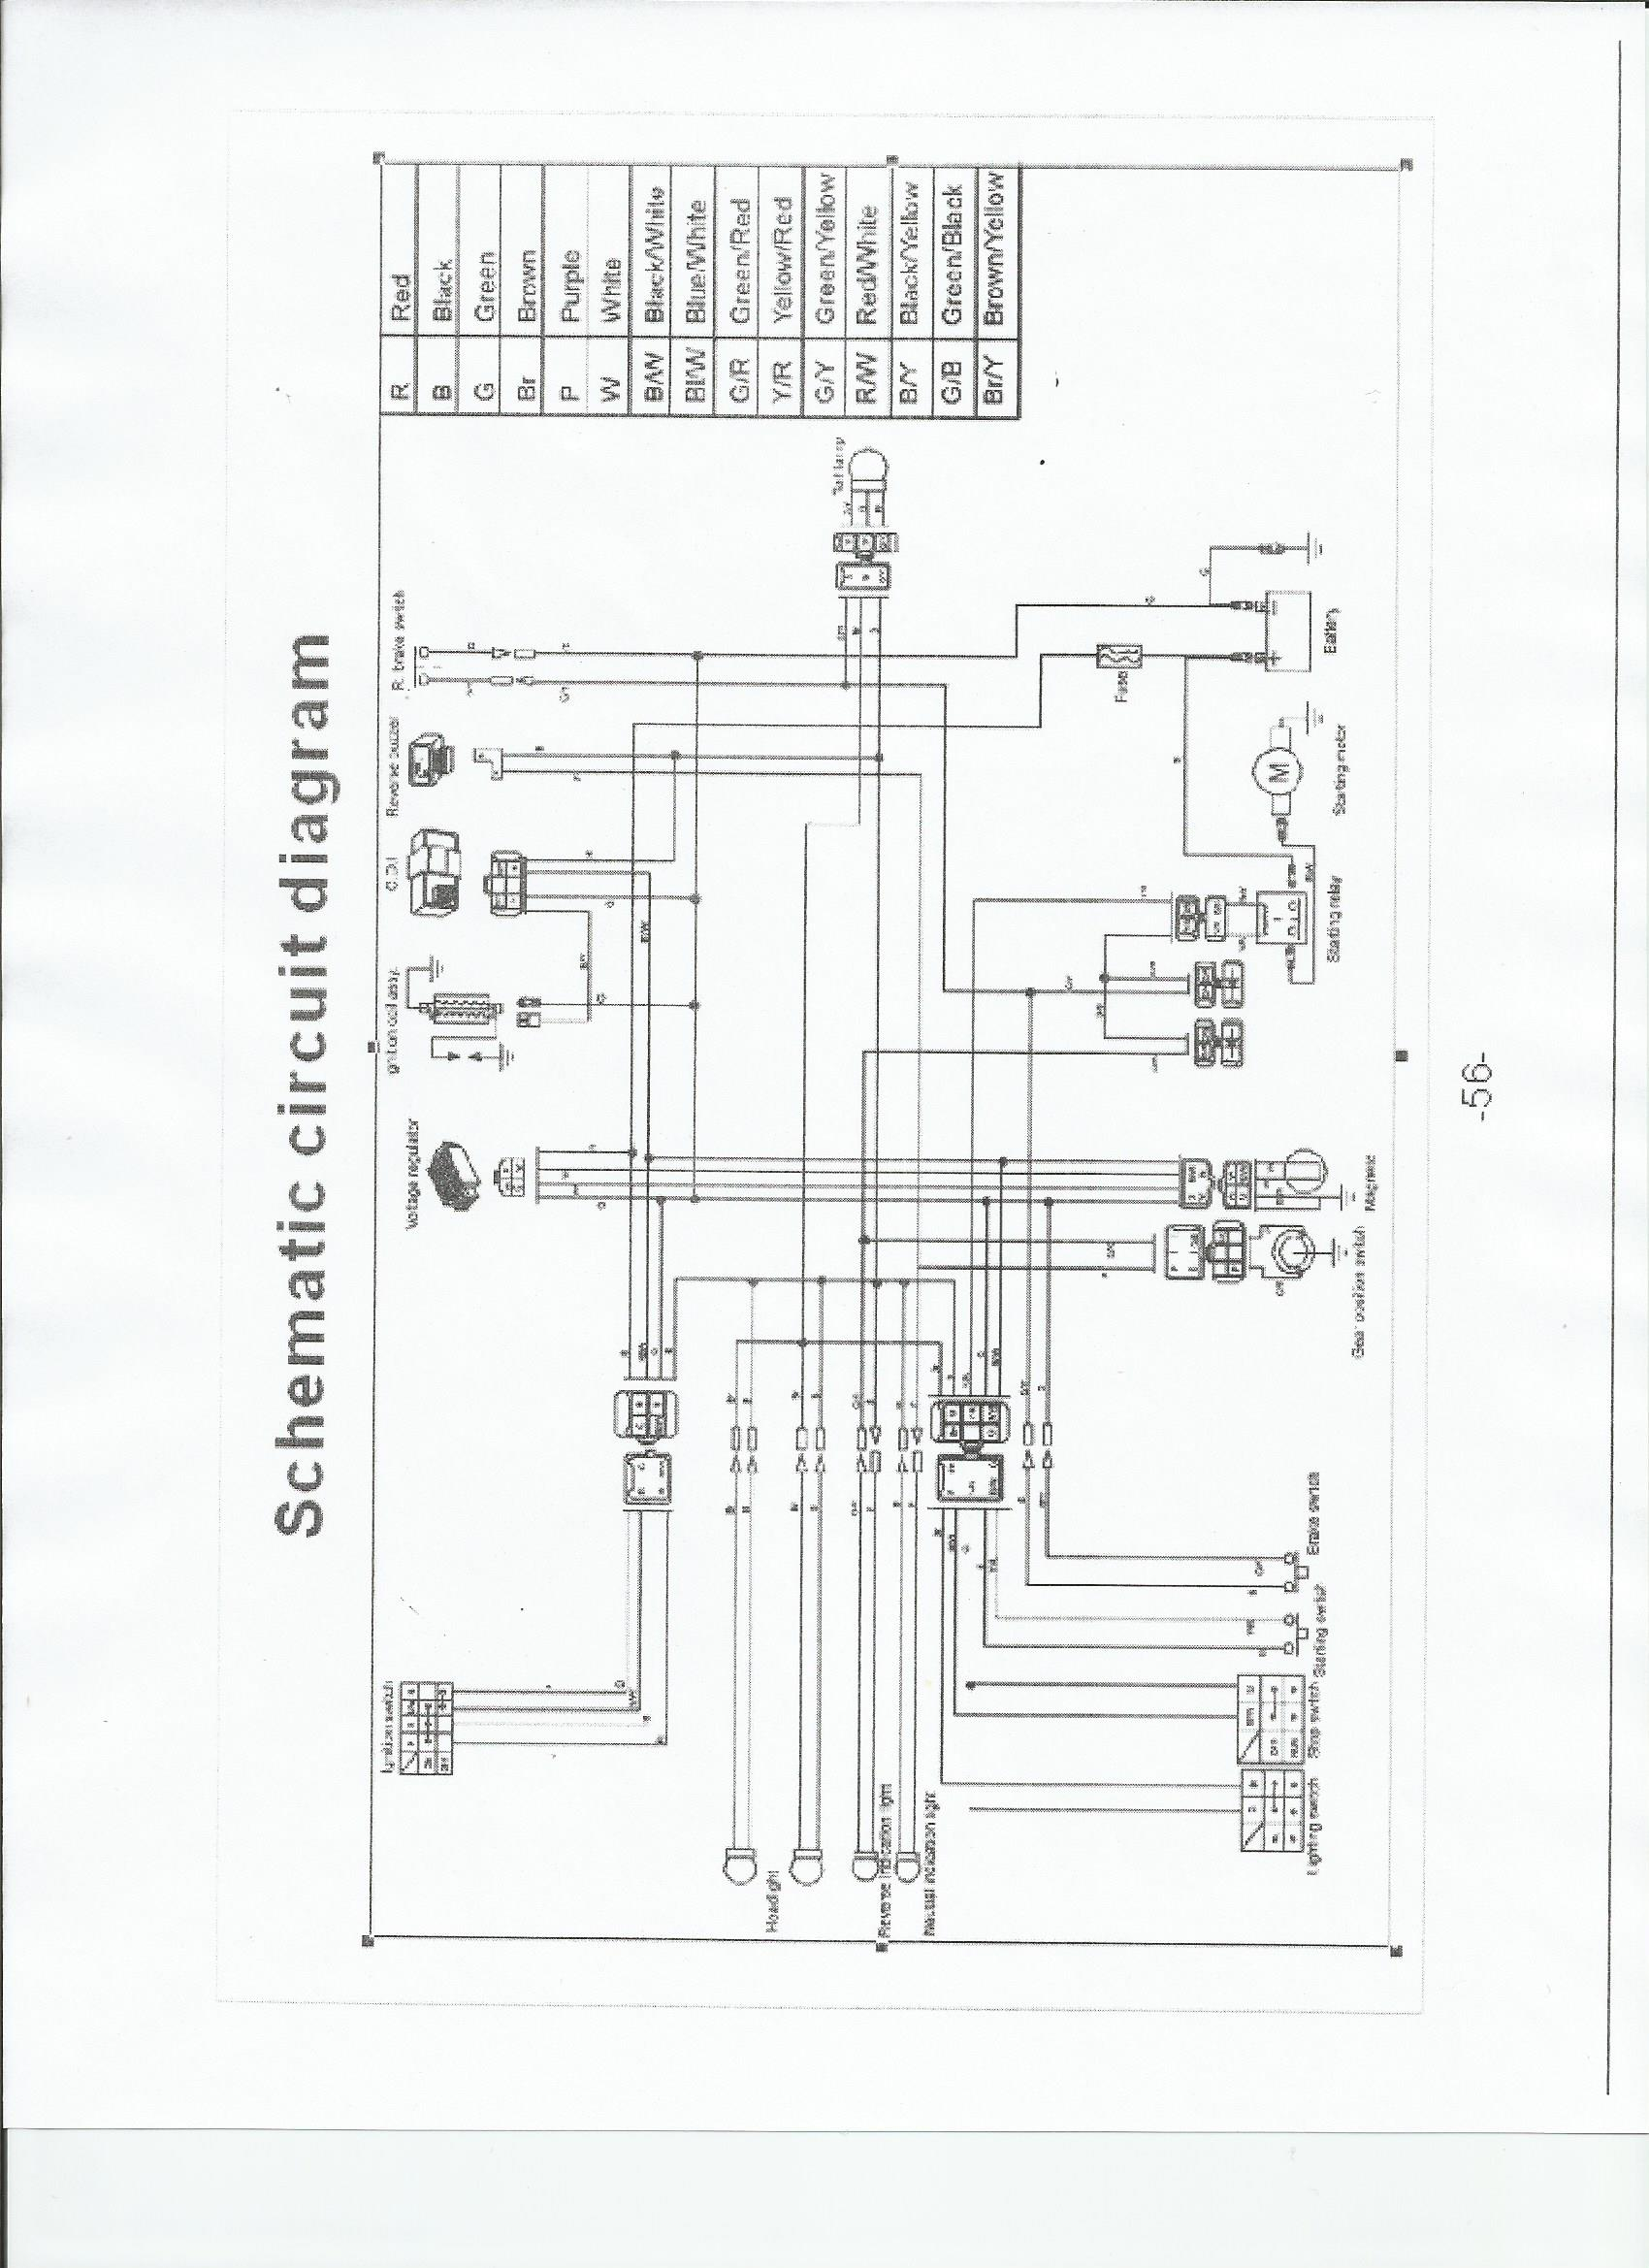 medium resolution of rascal 600 scooter wiring diagram best wiring librarychinese scooter tao wiring diagram wiring diagramstao tao wiring